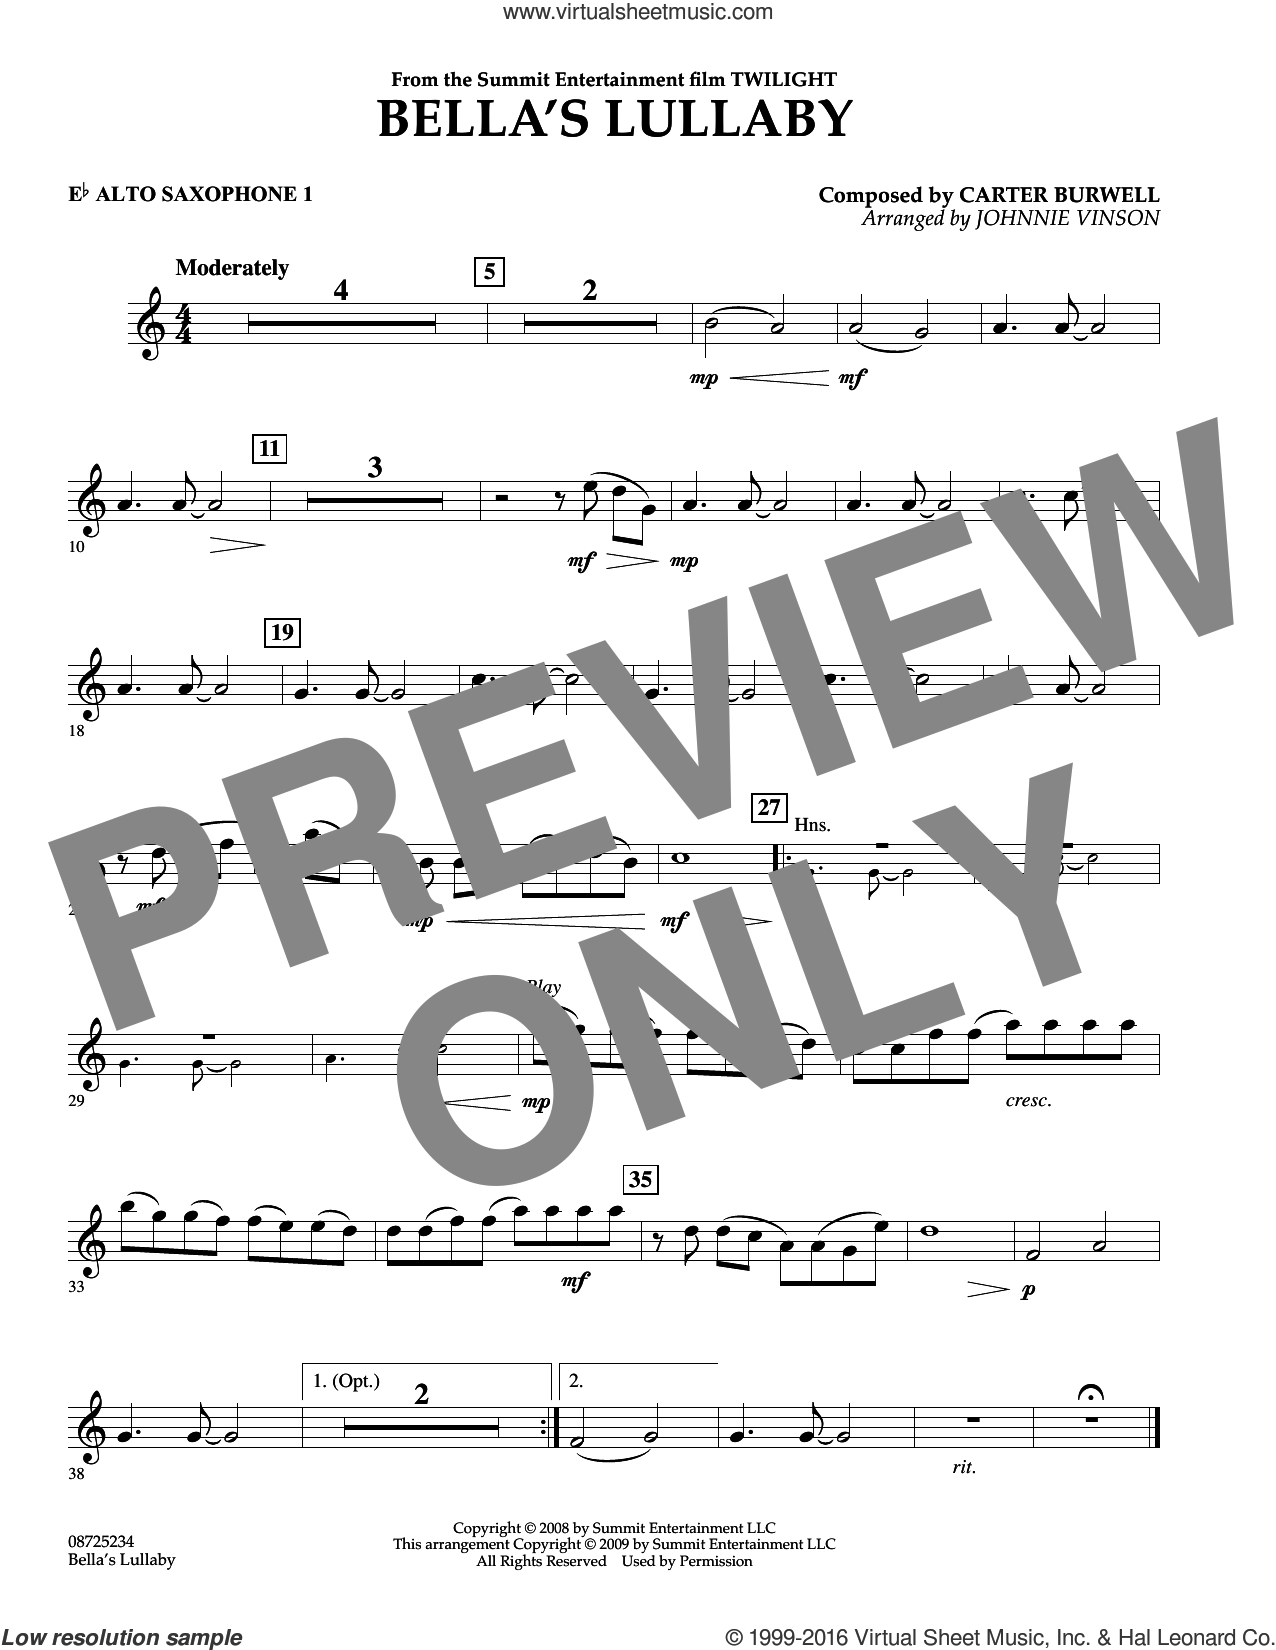 Bella's Lullaby (from Twilight) sheet music for concert band (Eb alto saxophone 1) by Carter Burwell and Johnnie Vinson, intermediate skill level